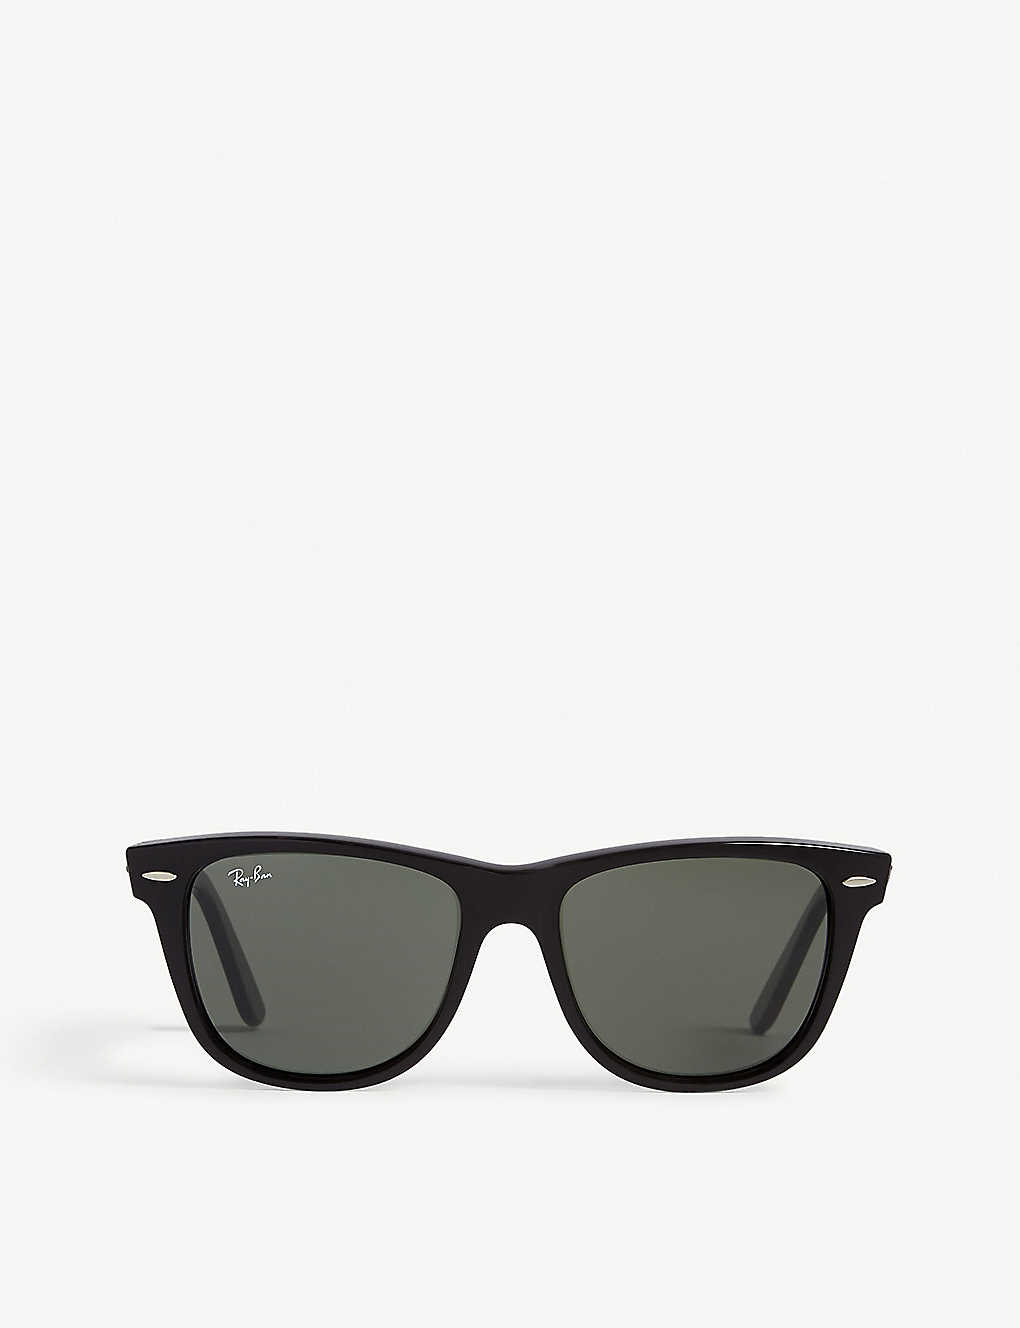 RAY-BAN: RB2140 Wayfarer sunglasses